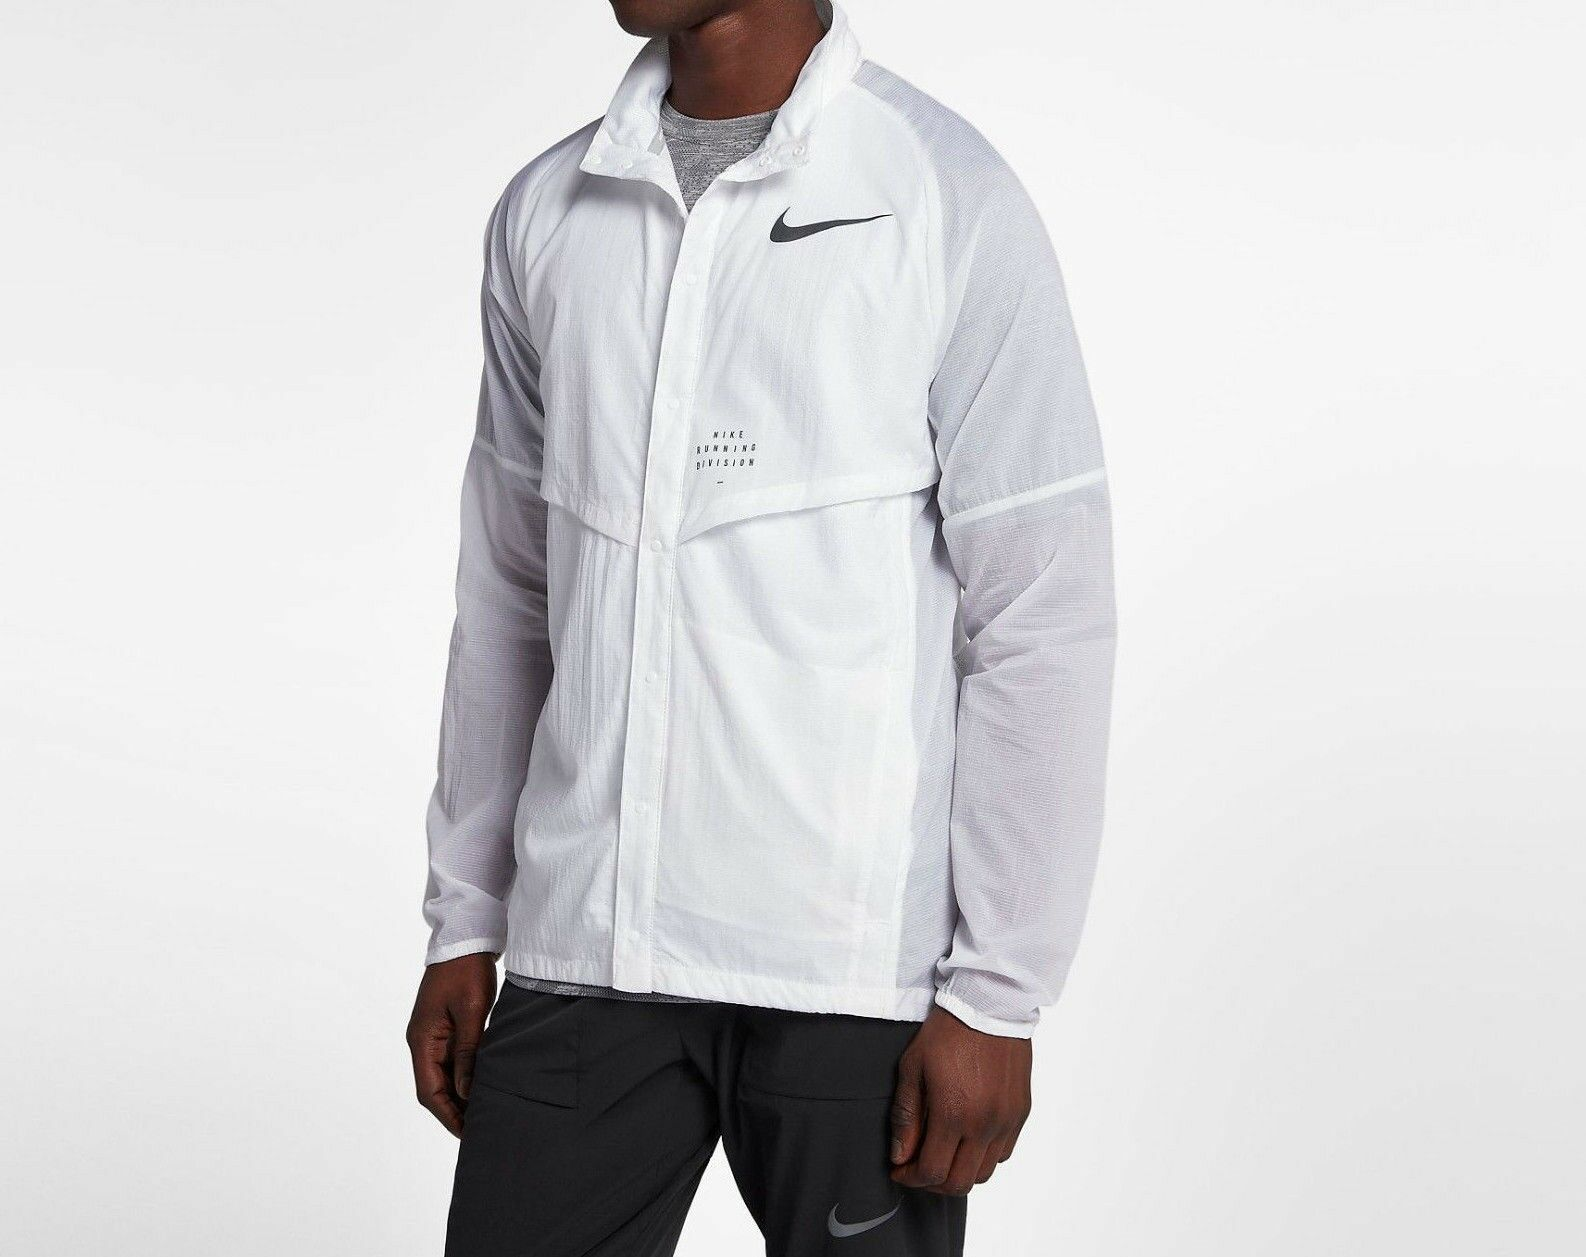 Nike Run Division Running Jacket White With Reflective Trim Packable Mens  Large